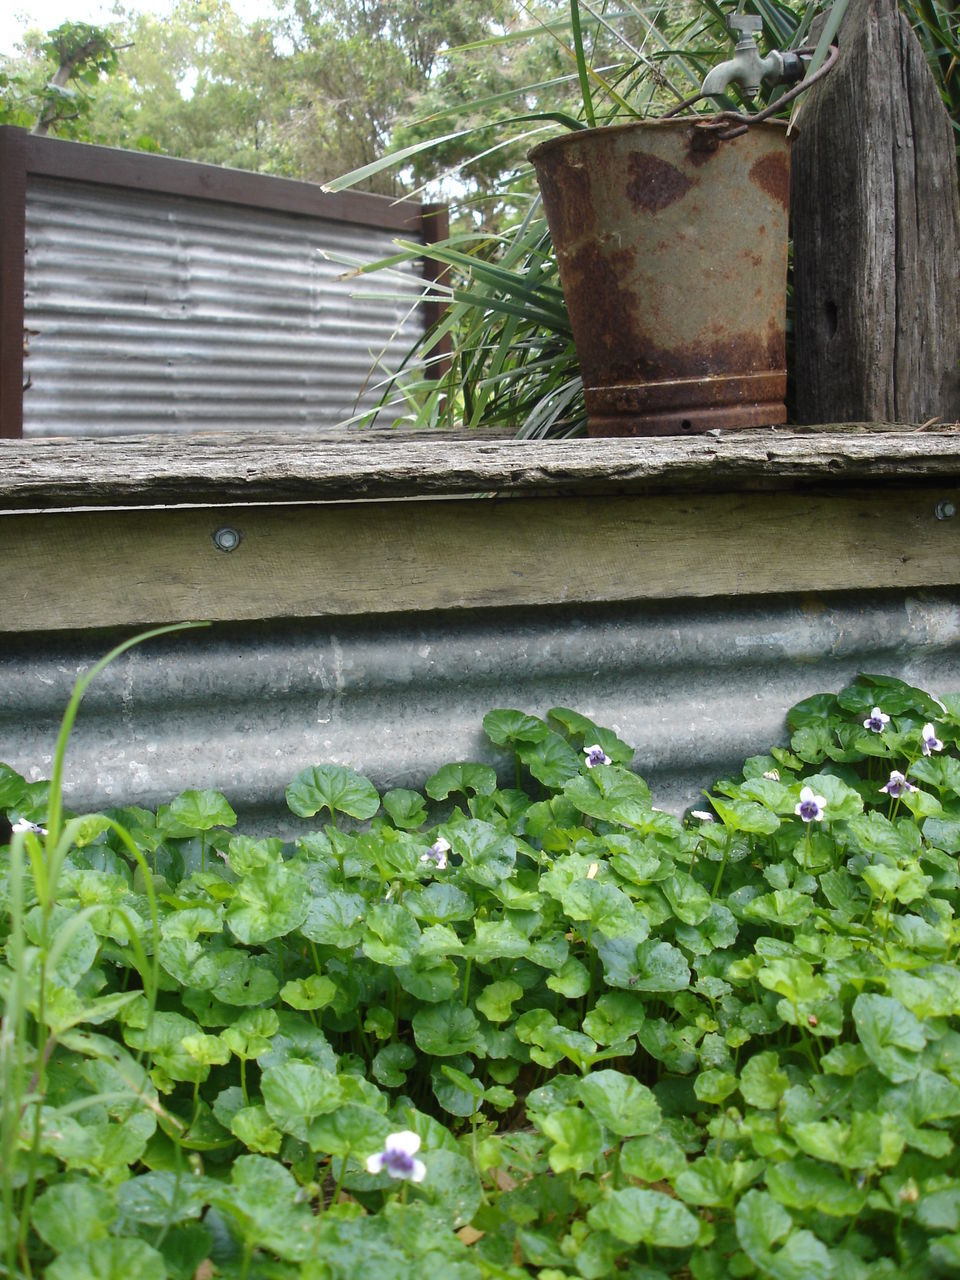 growth, plant, green color, day, leaf, outdoors, no people, nature, architecture, freshness, close-up